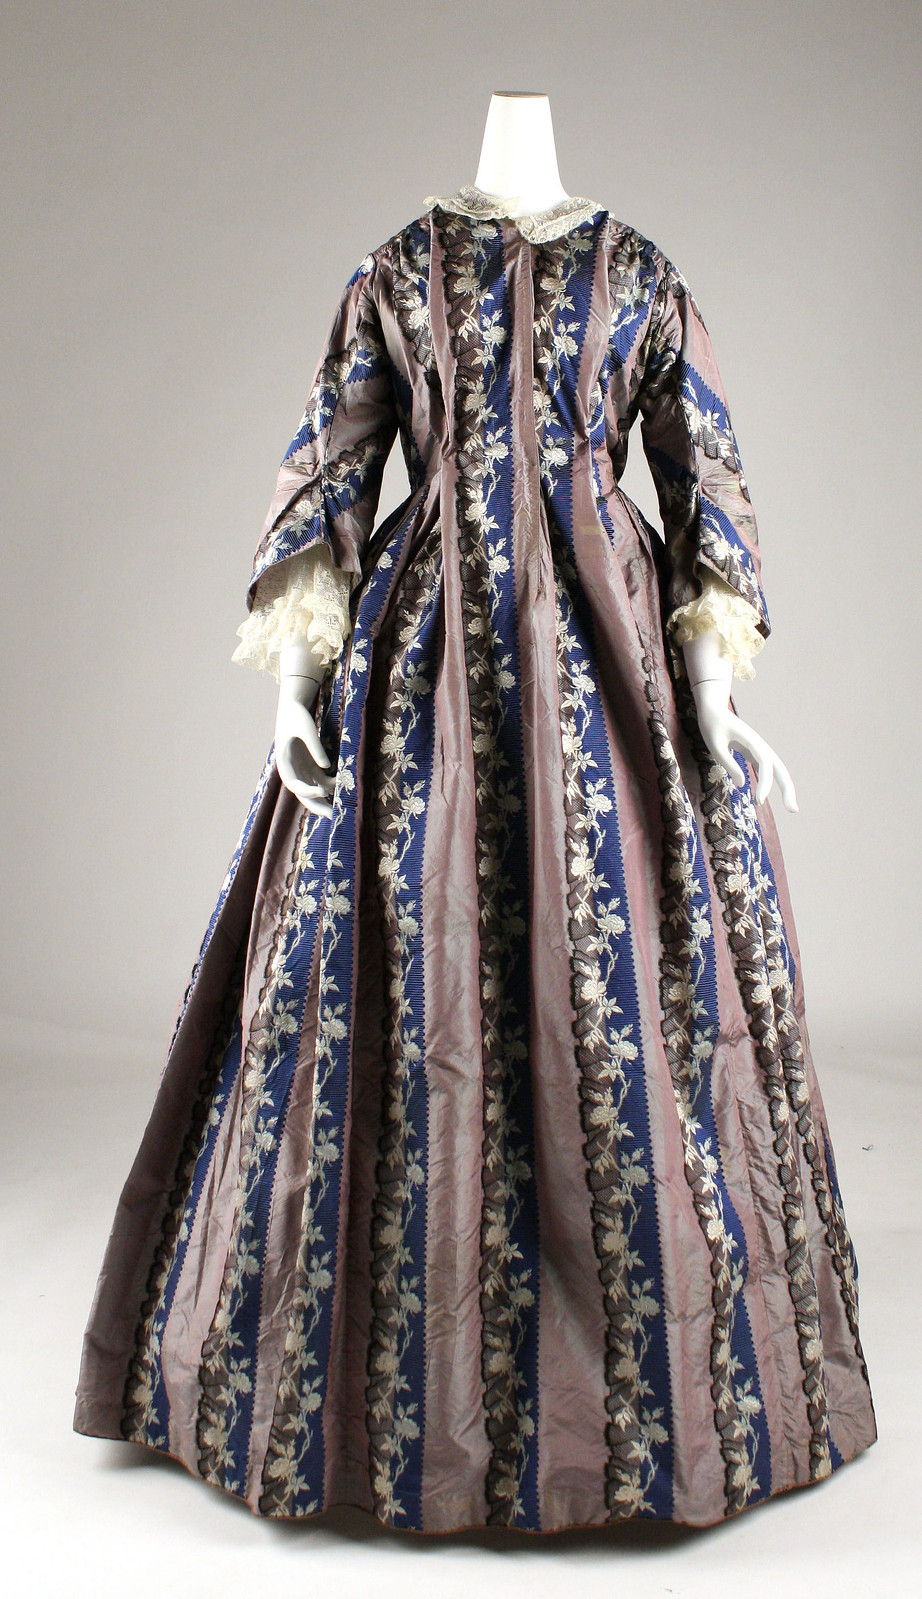 Dressing gown, c.1850, American, Silk, cotton. metmuseum